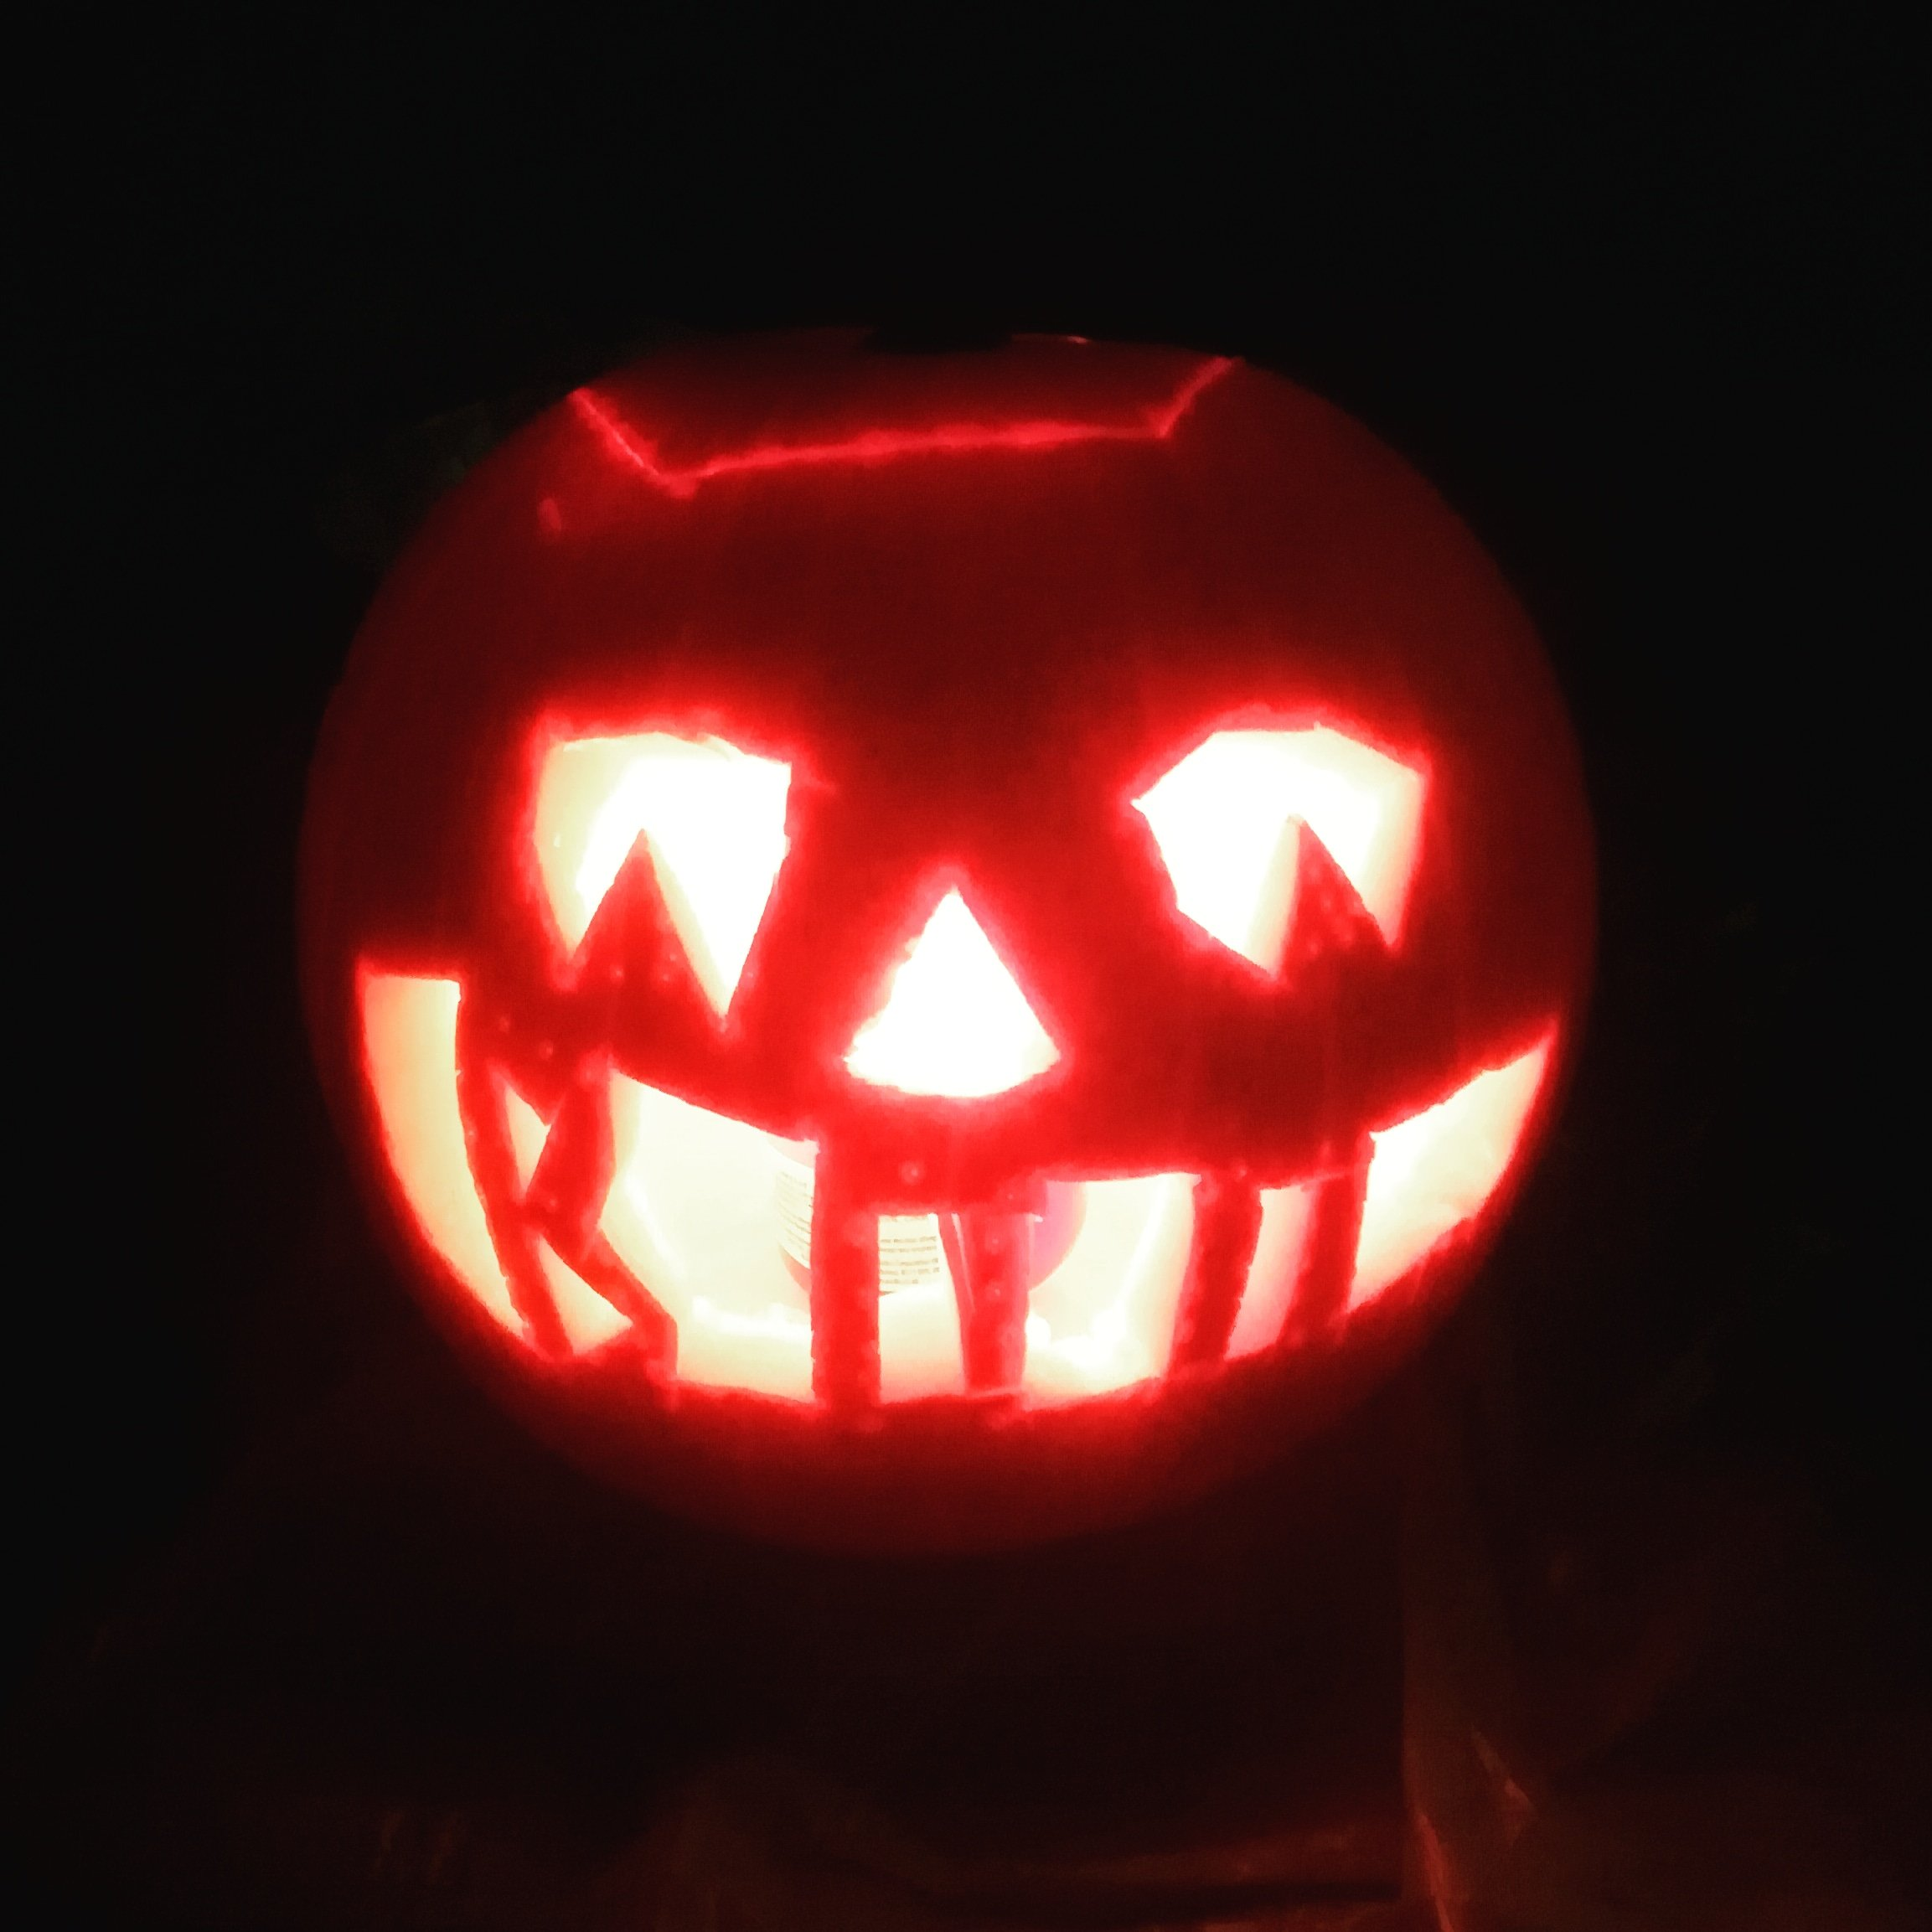 happy halloween! tell ghost stories around my spooky pumpkin